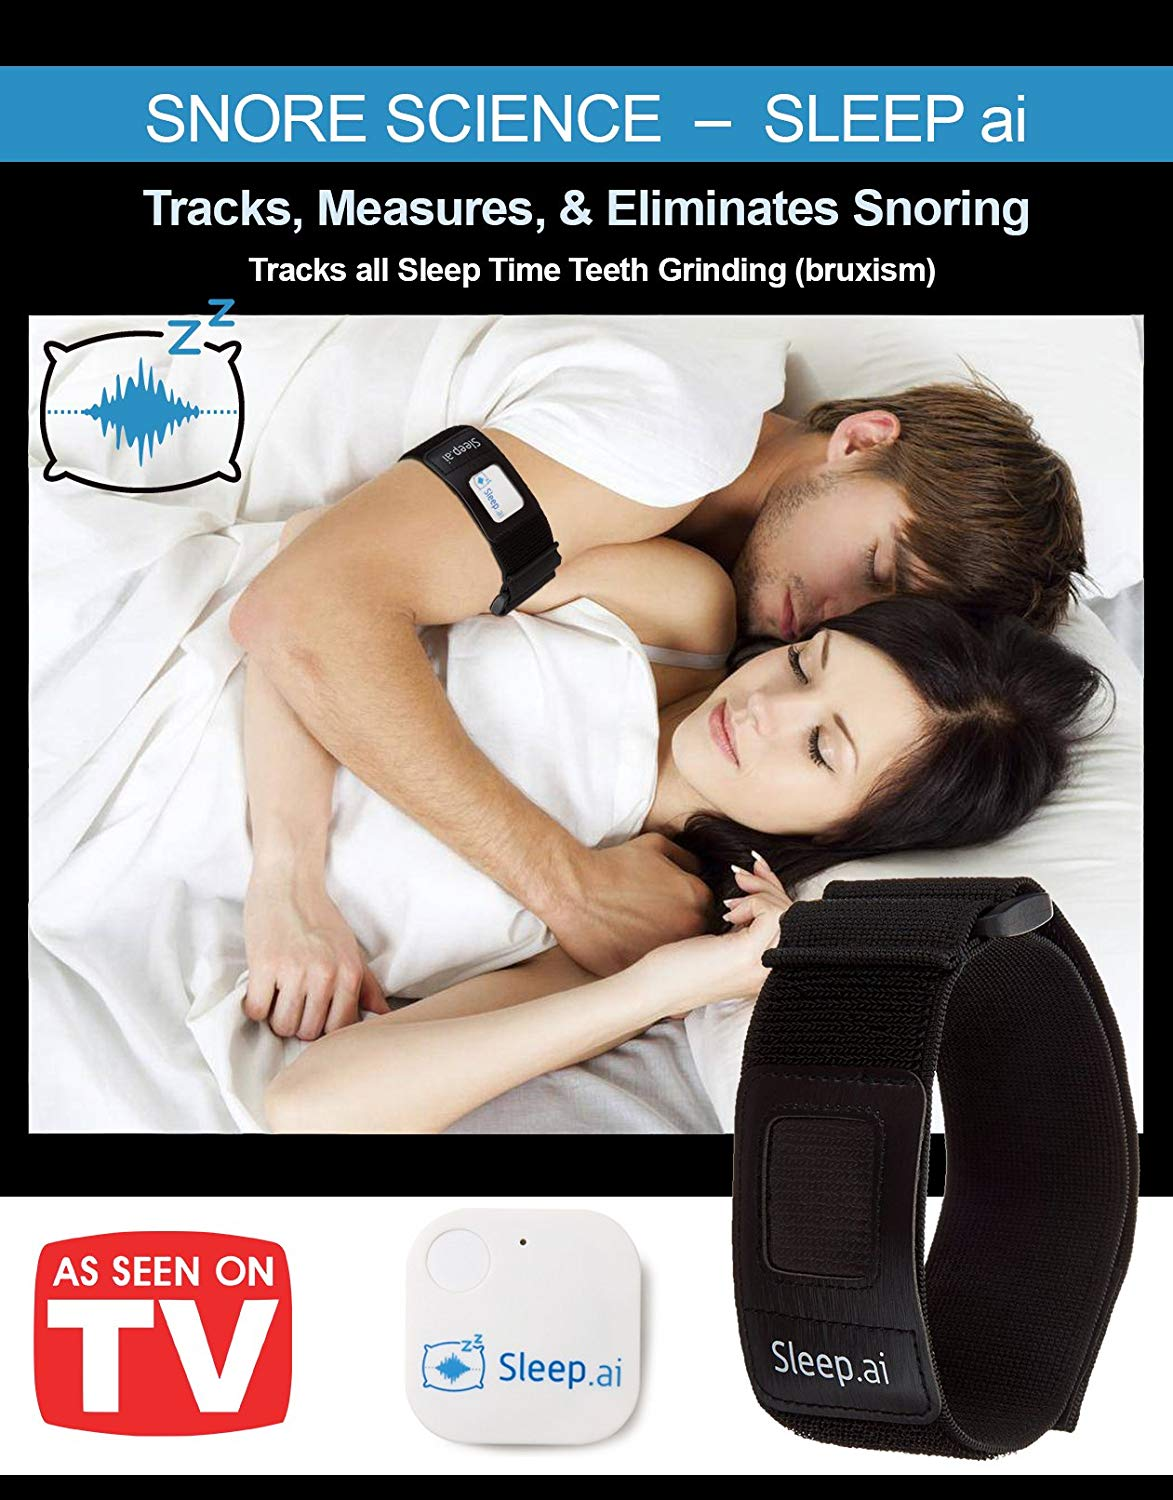 Sleep AI Snoring Solution - Voted BEST Anti Snore Device - Replaces Mouth Guards Mouthpiece Chin Strap Nose Strips and Vents - Natural Sleep Aid-TOP 10 BEST ANTI-SNORING DEVICES IN 2018 REVIEWS